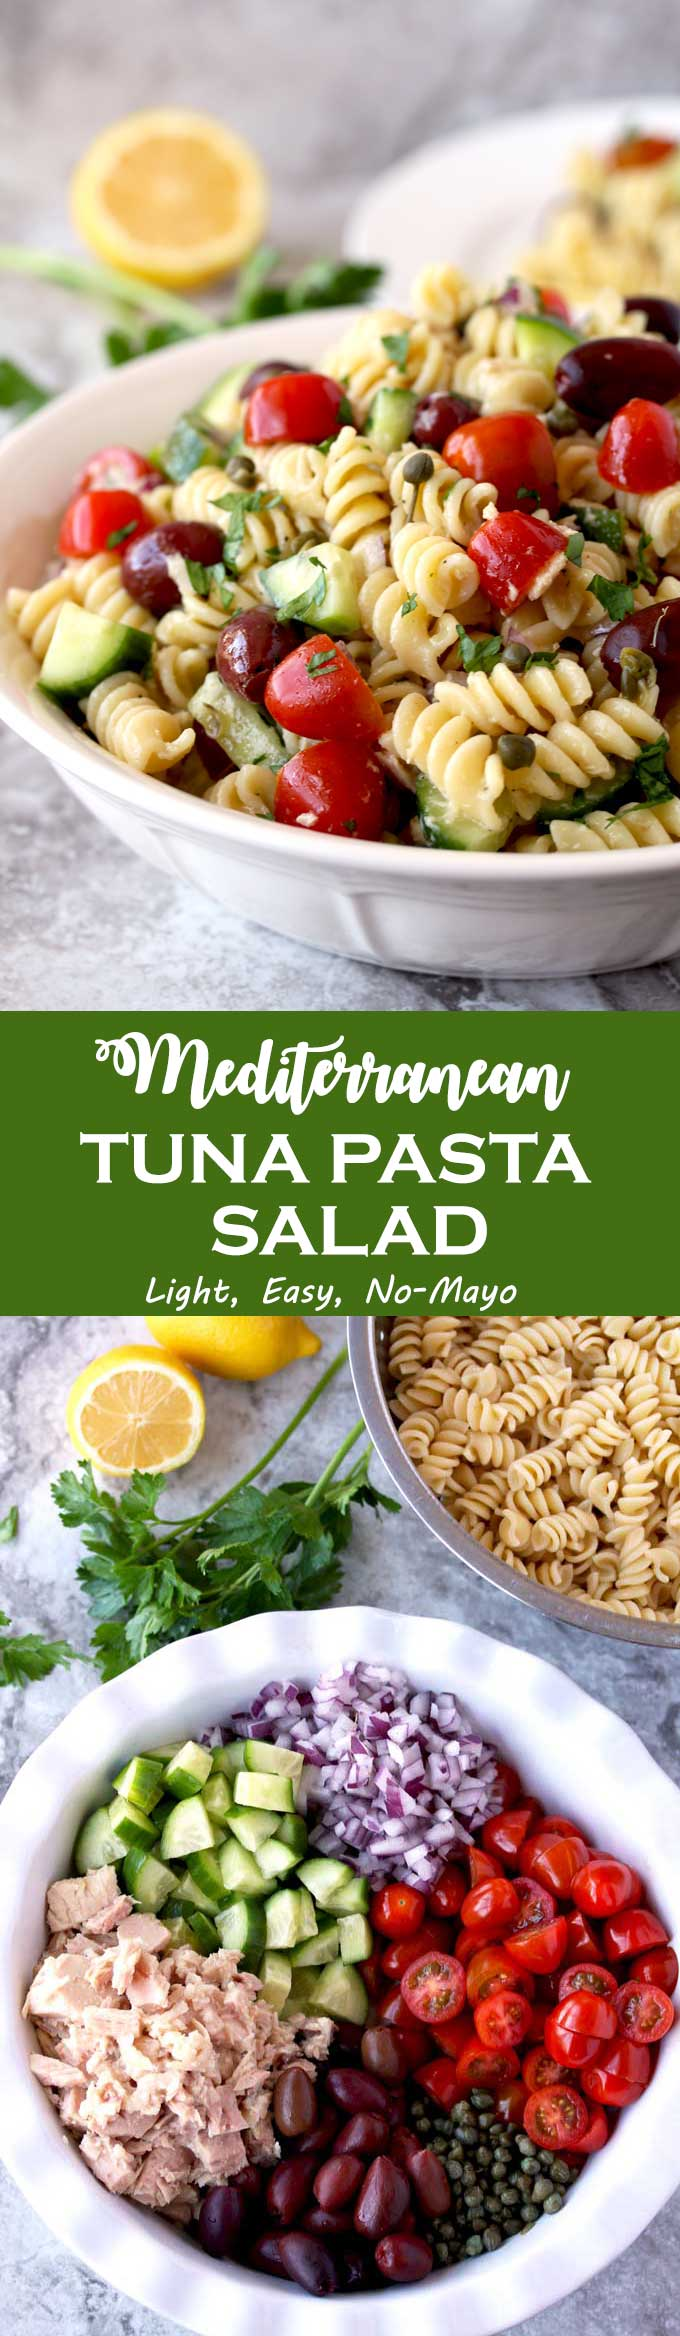 This Tuna Pasta Salad is mayo-free, delicious and quick to make. Tossed in a light lemon, yogurt and herb vinaigrette, with canned tuna, cherry tomatoes, cucumbers, mild diced red onions, Kalamata olives and capers. This Mediterranean Tuna Pasta Salad is the perfect lunch, light dinner or side dish to serve at your next gathering! #Pastasalad #Tuna #Salad #Tunasalad #BBQ #lunch #picnic #nomayo